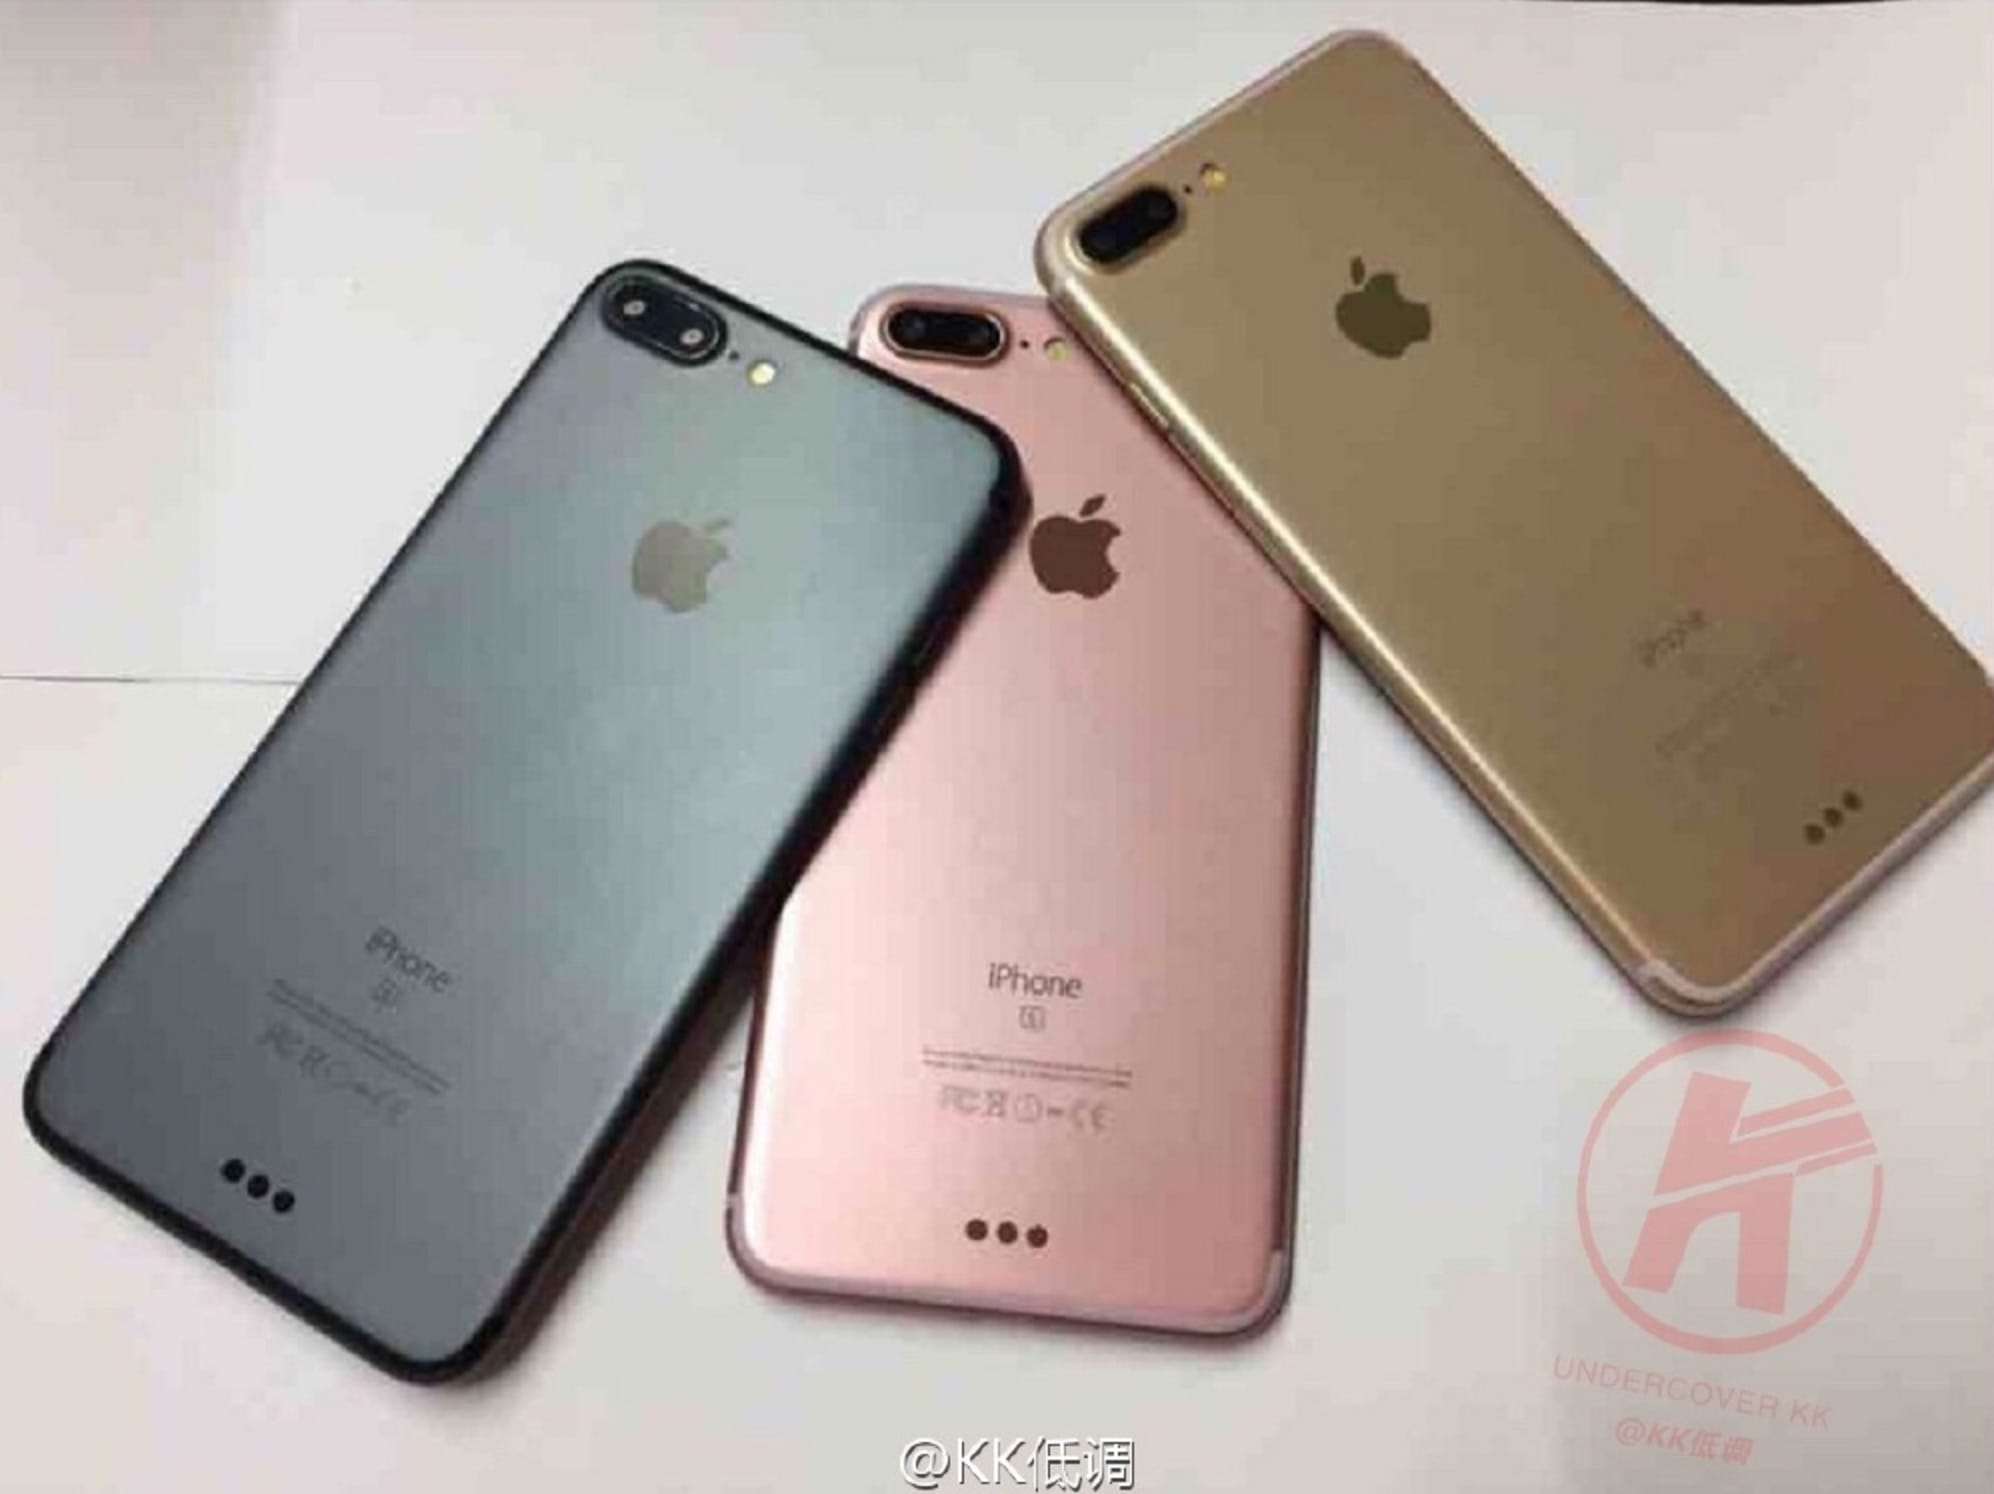 Nouvelles images de l 39 iphone 7 l 39 ext rieur comme l for Interieur iphone 7